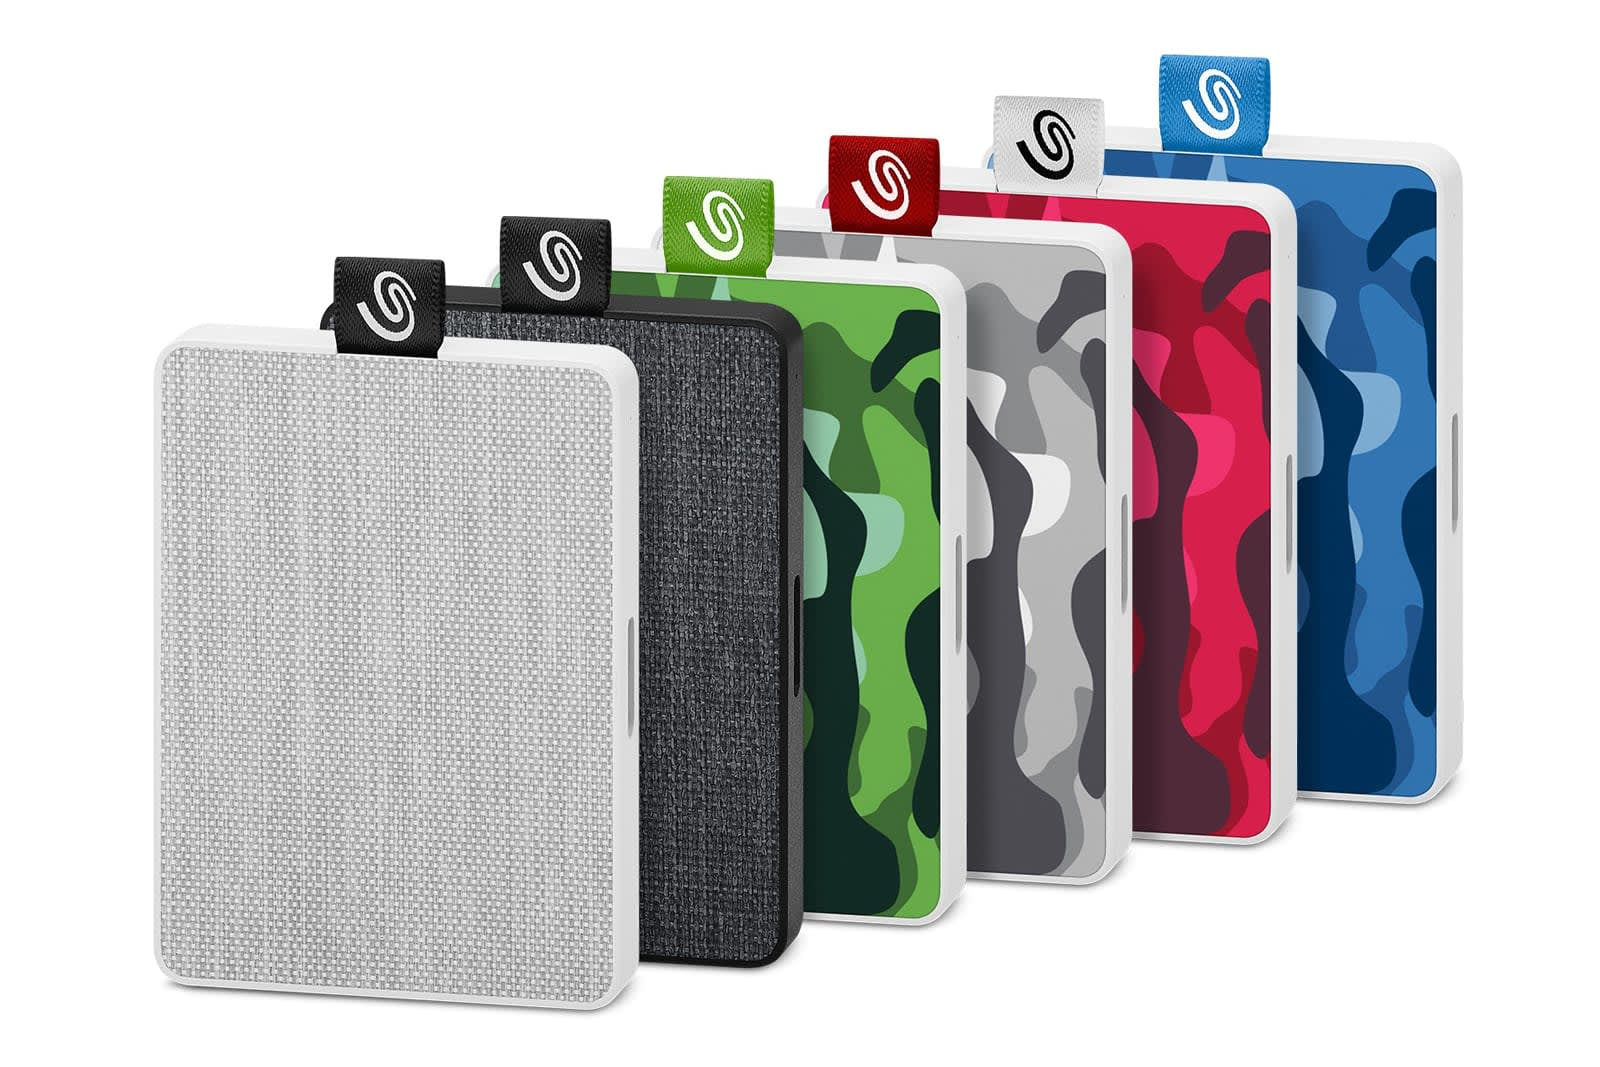 Seagate's latest portable SSDs are wrapped in fabric and camo